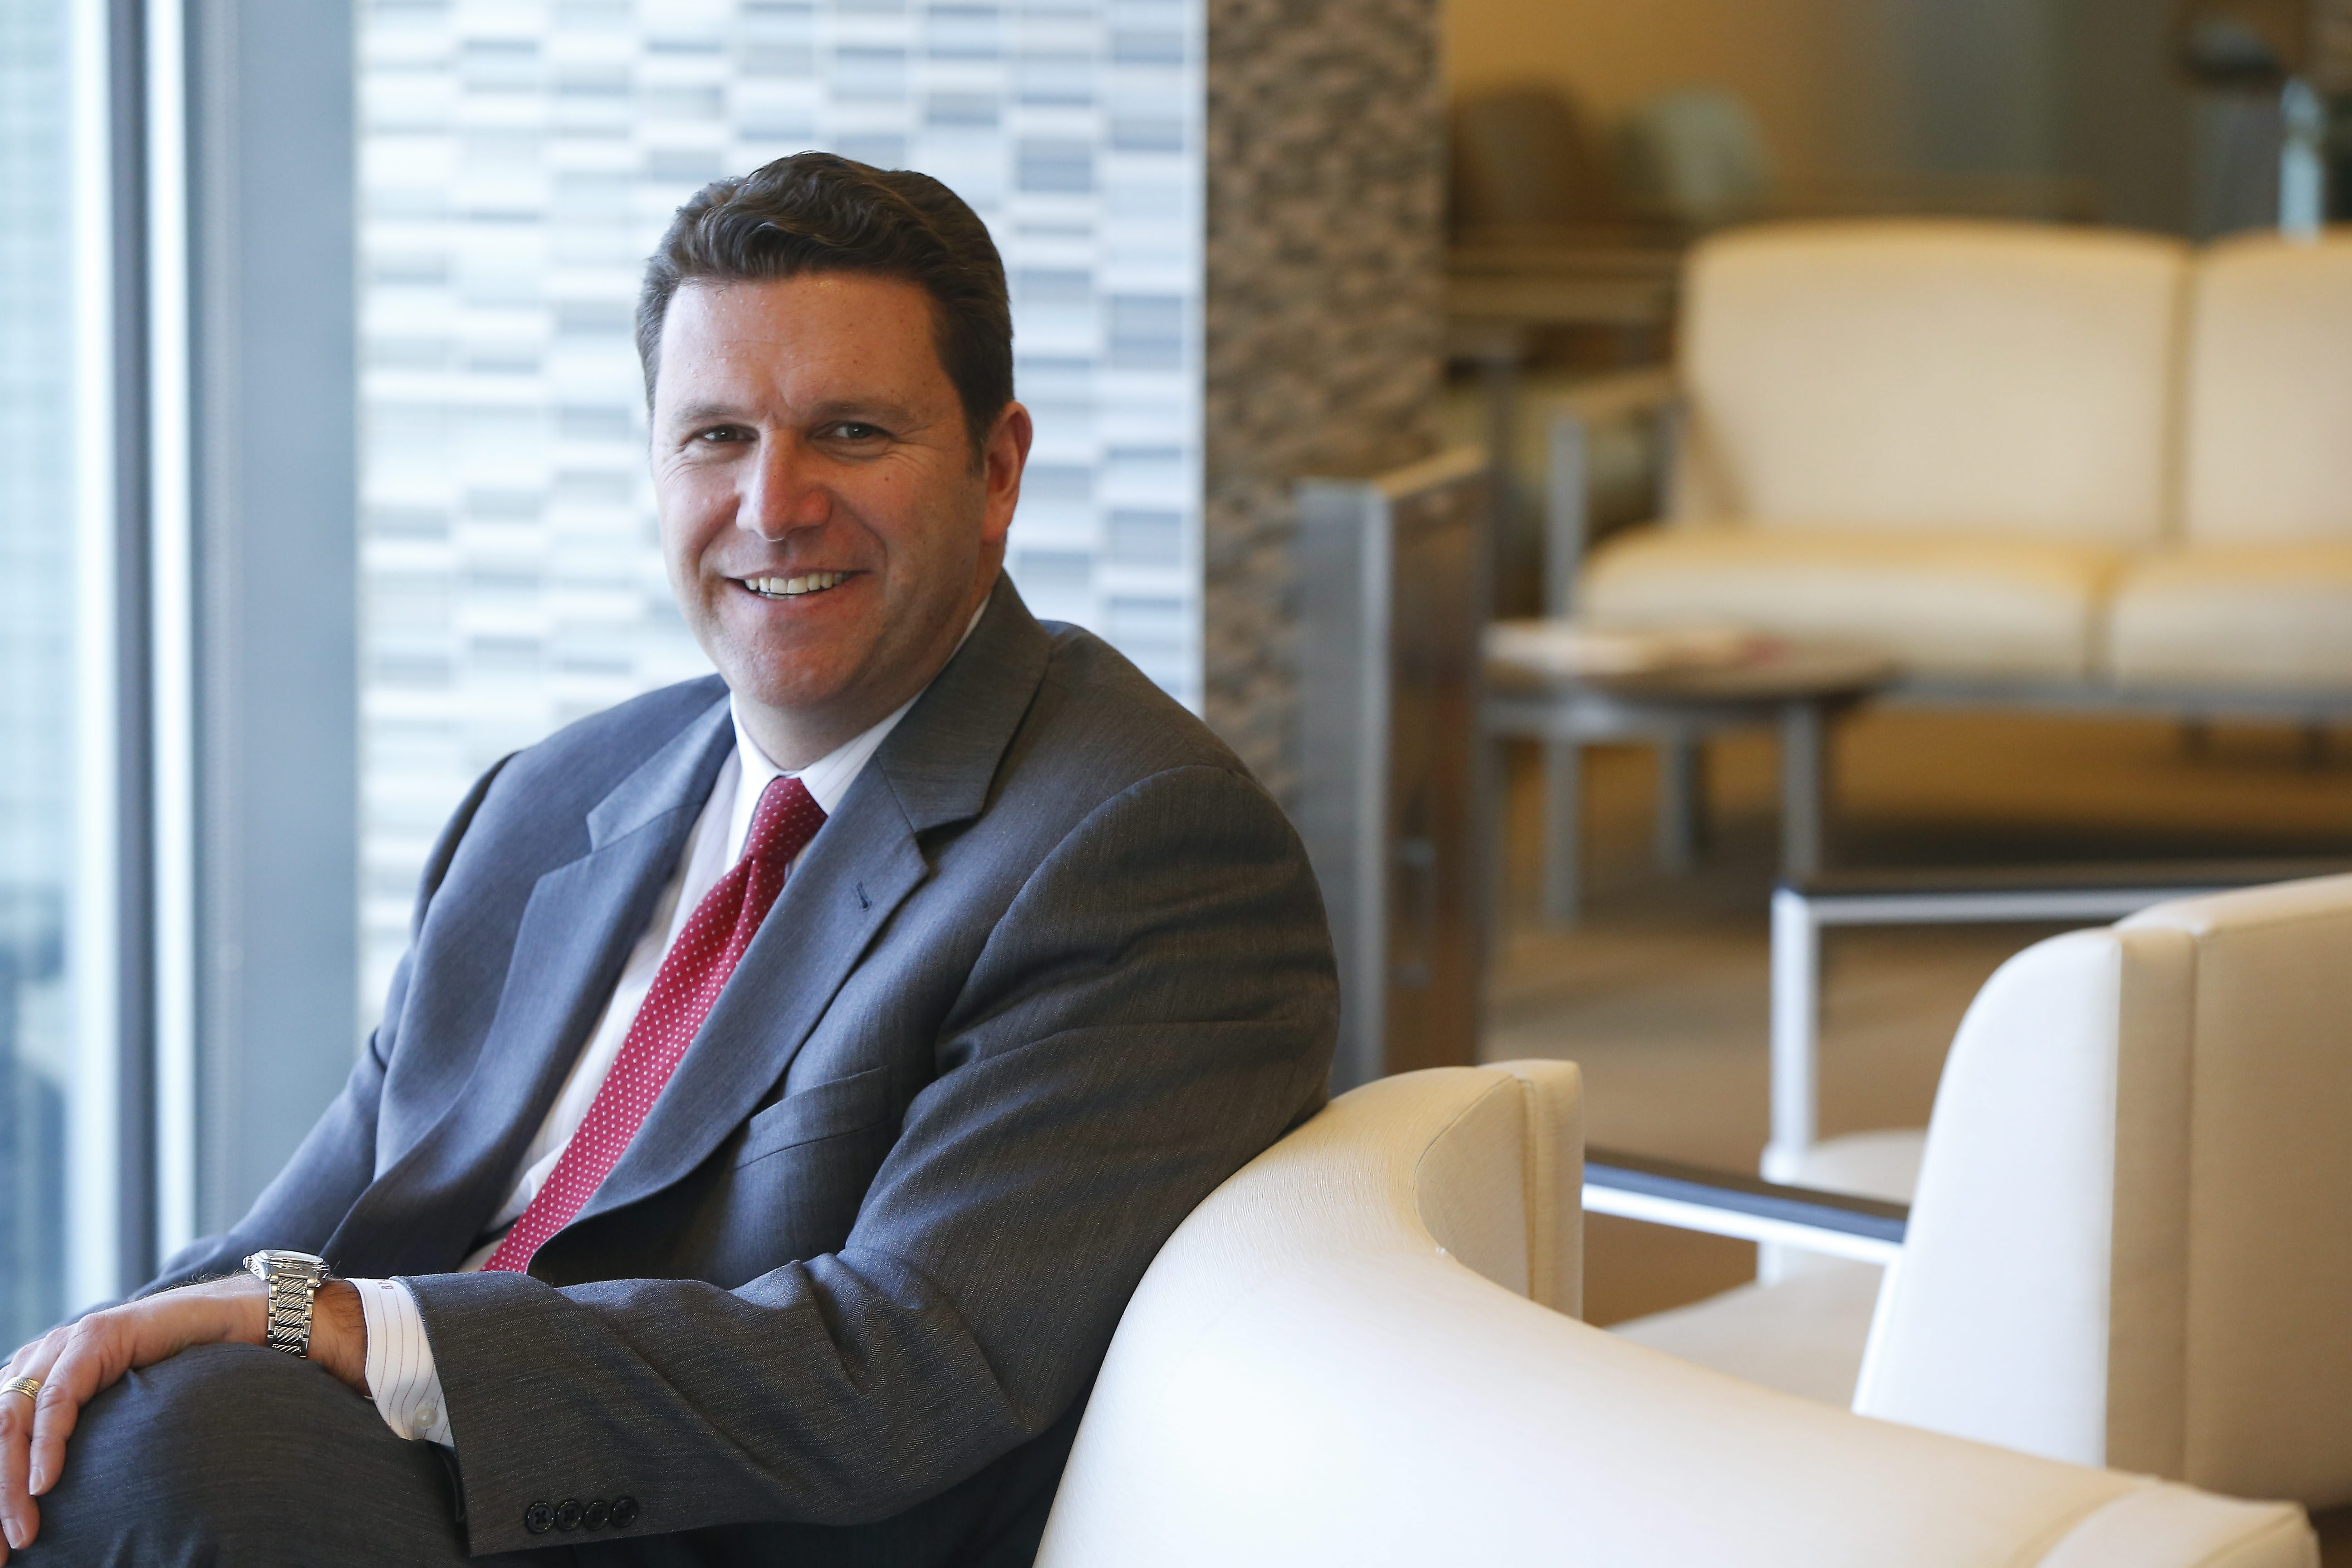 After 11 years working at Erie County Medical Center, Thomas J. Quatroche Jr. was named CEO of the hospital last week. He takes over an institution seeing healthy growth at a time when the entire health care industry is adapting to dramatic changes.